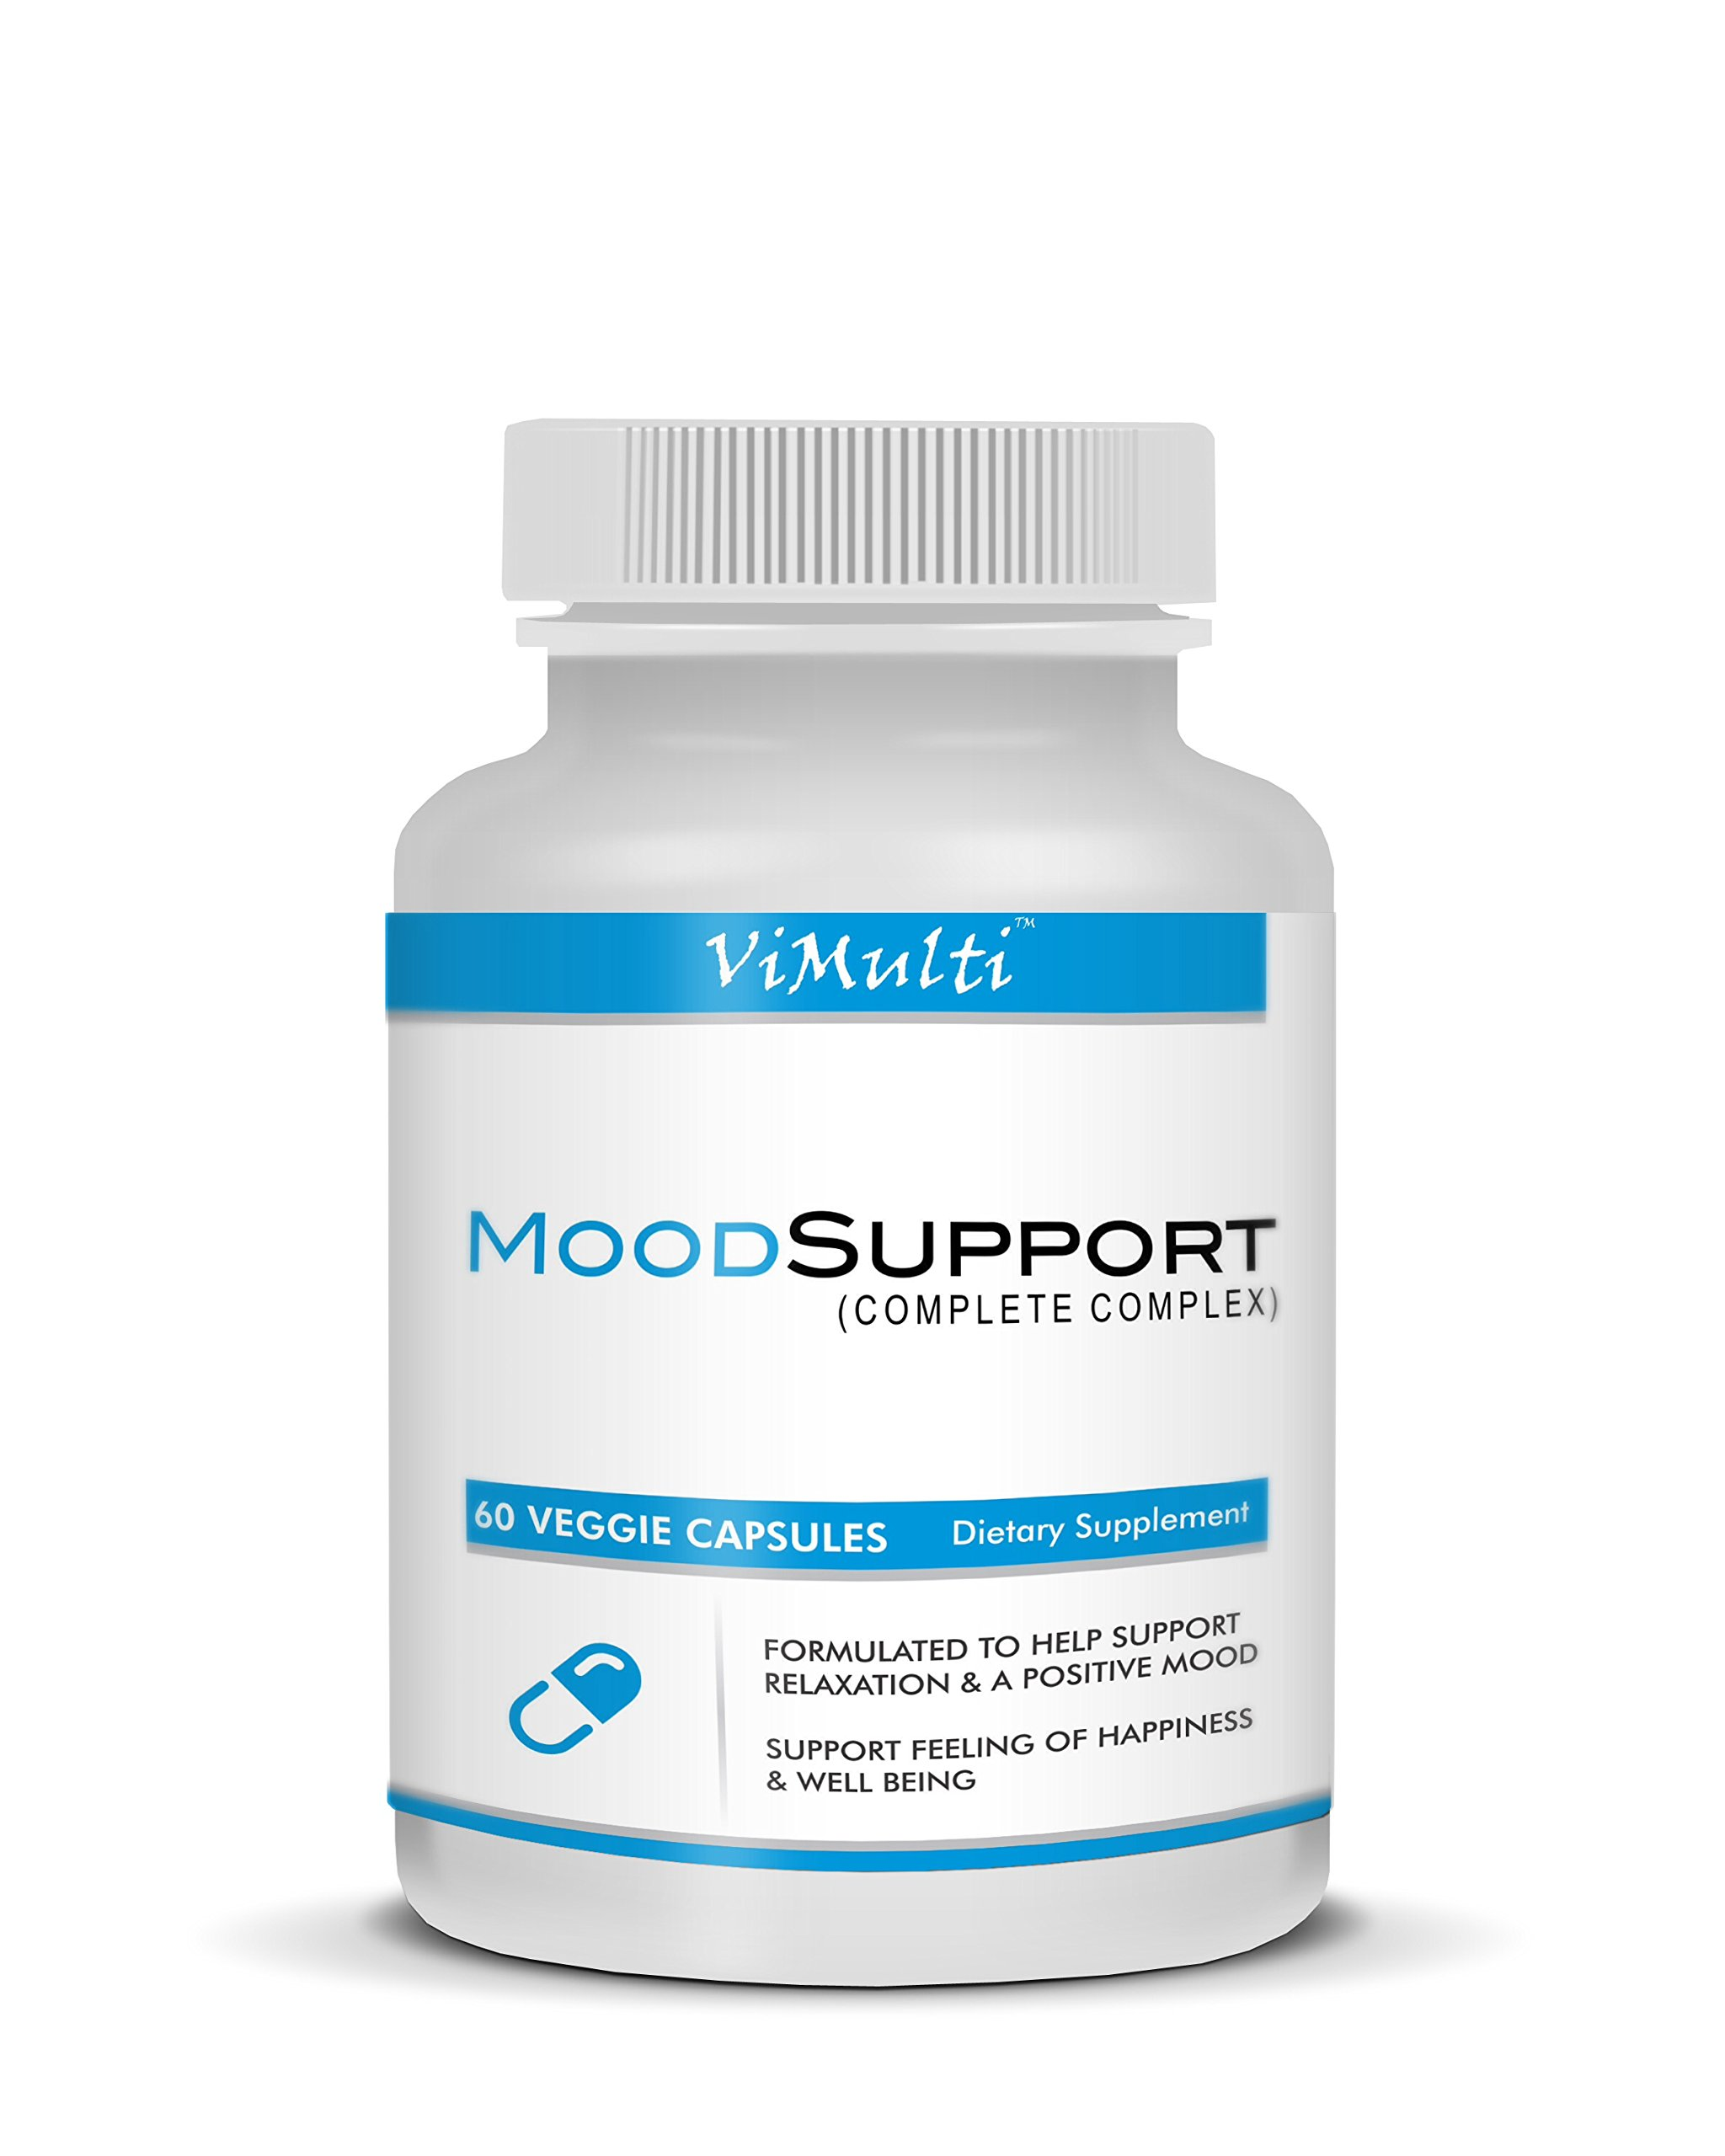 Vimulti Depression Pills with Anxiety Relief Vitamins. Eliminate Mood Swings Vitamins for Depression W Mood Enhancers